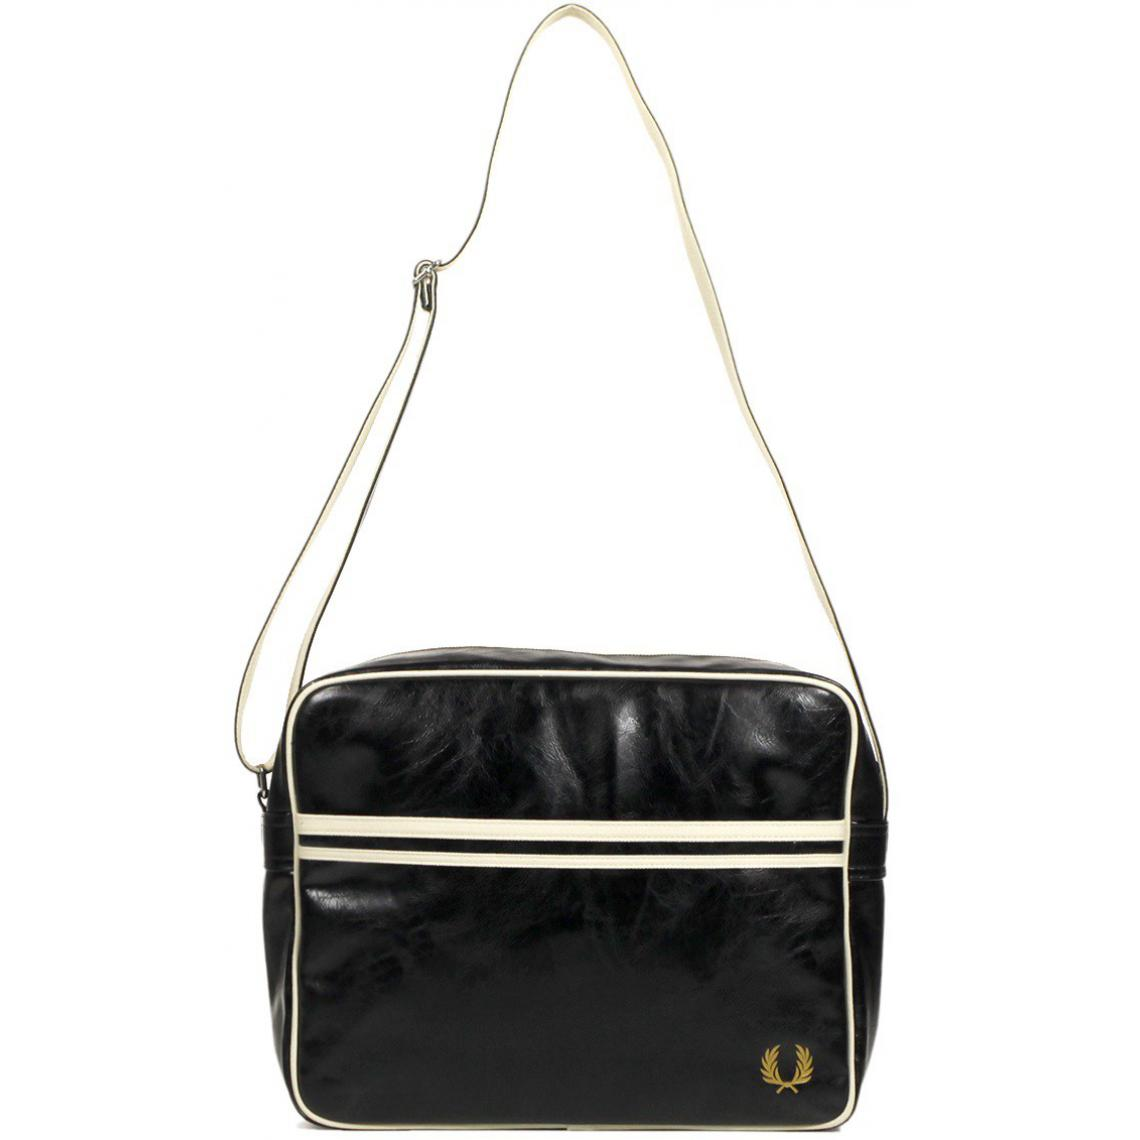 Sac Authentic Perry Suisses Bandoulière Besace A Maroquinerie3 Fred c4RjLSq35A